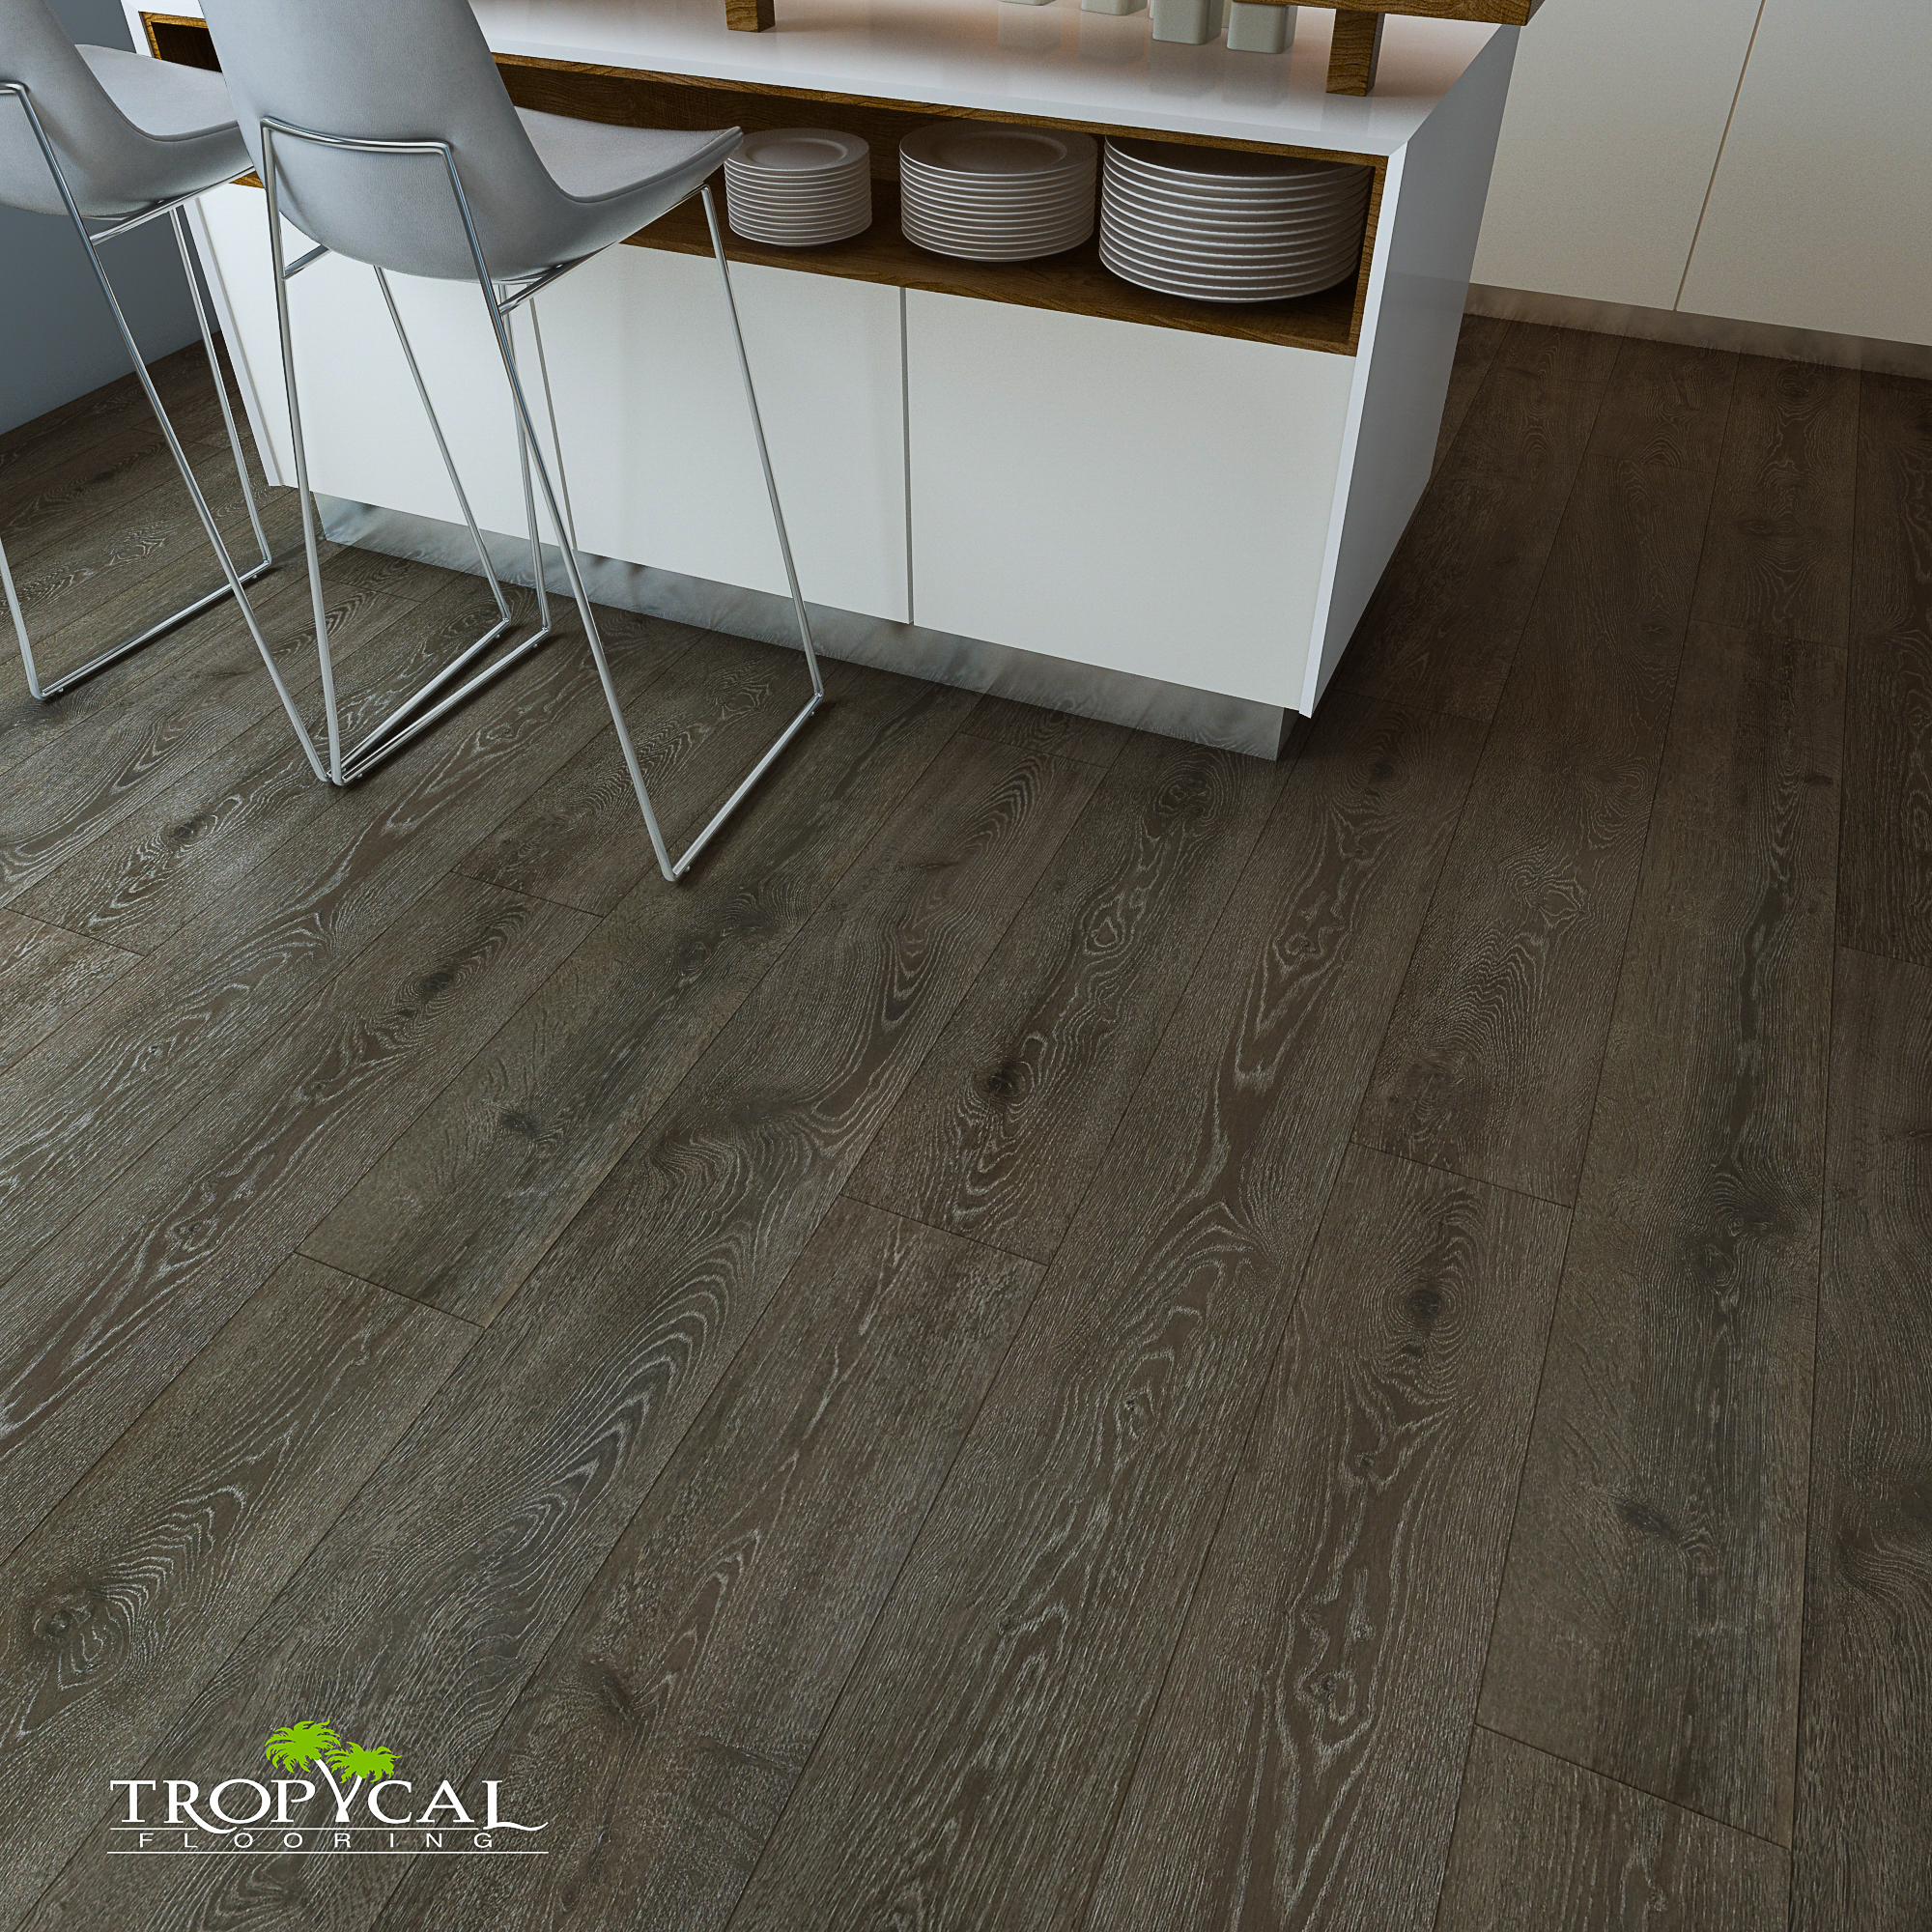 Ruby Tempest Tropical Flooring